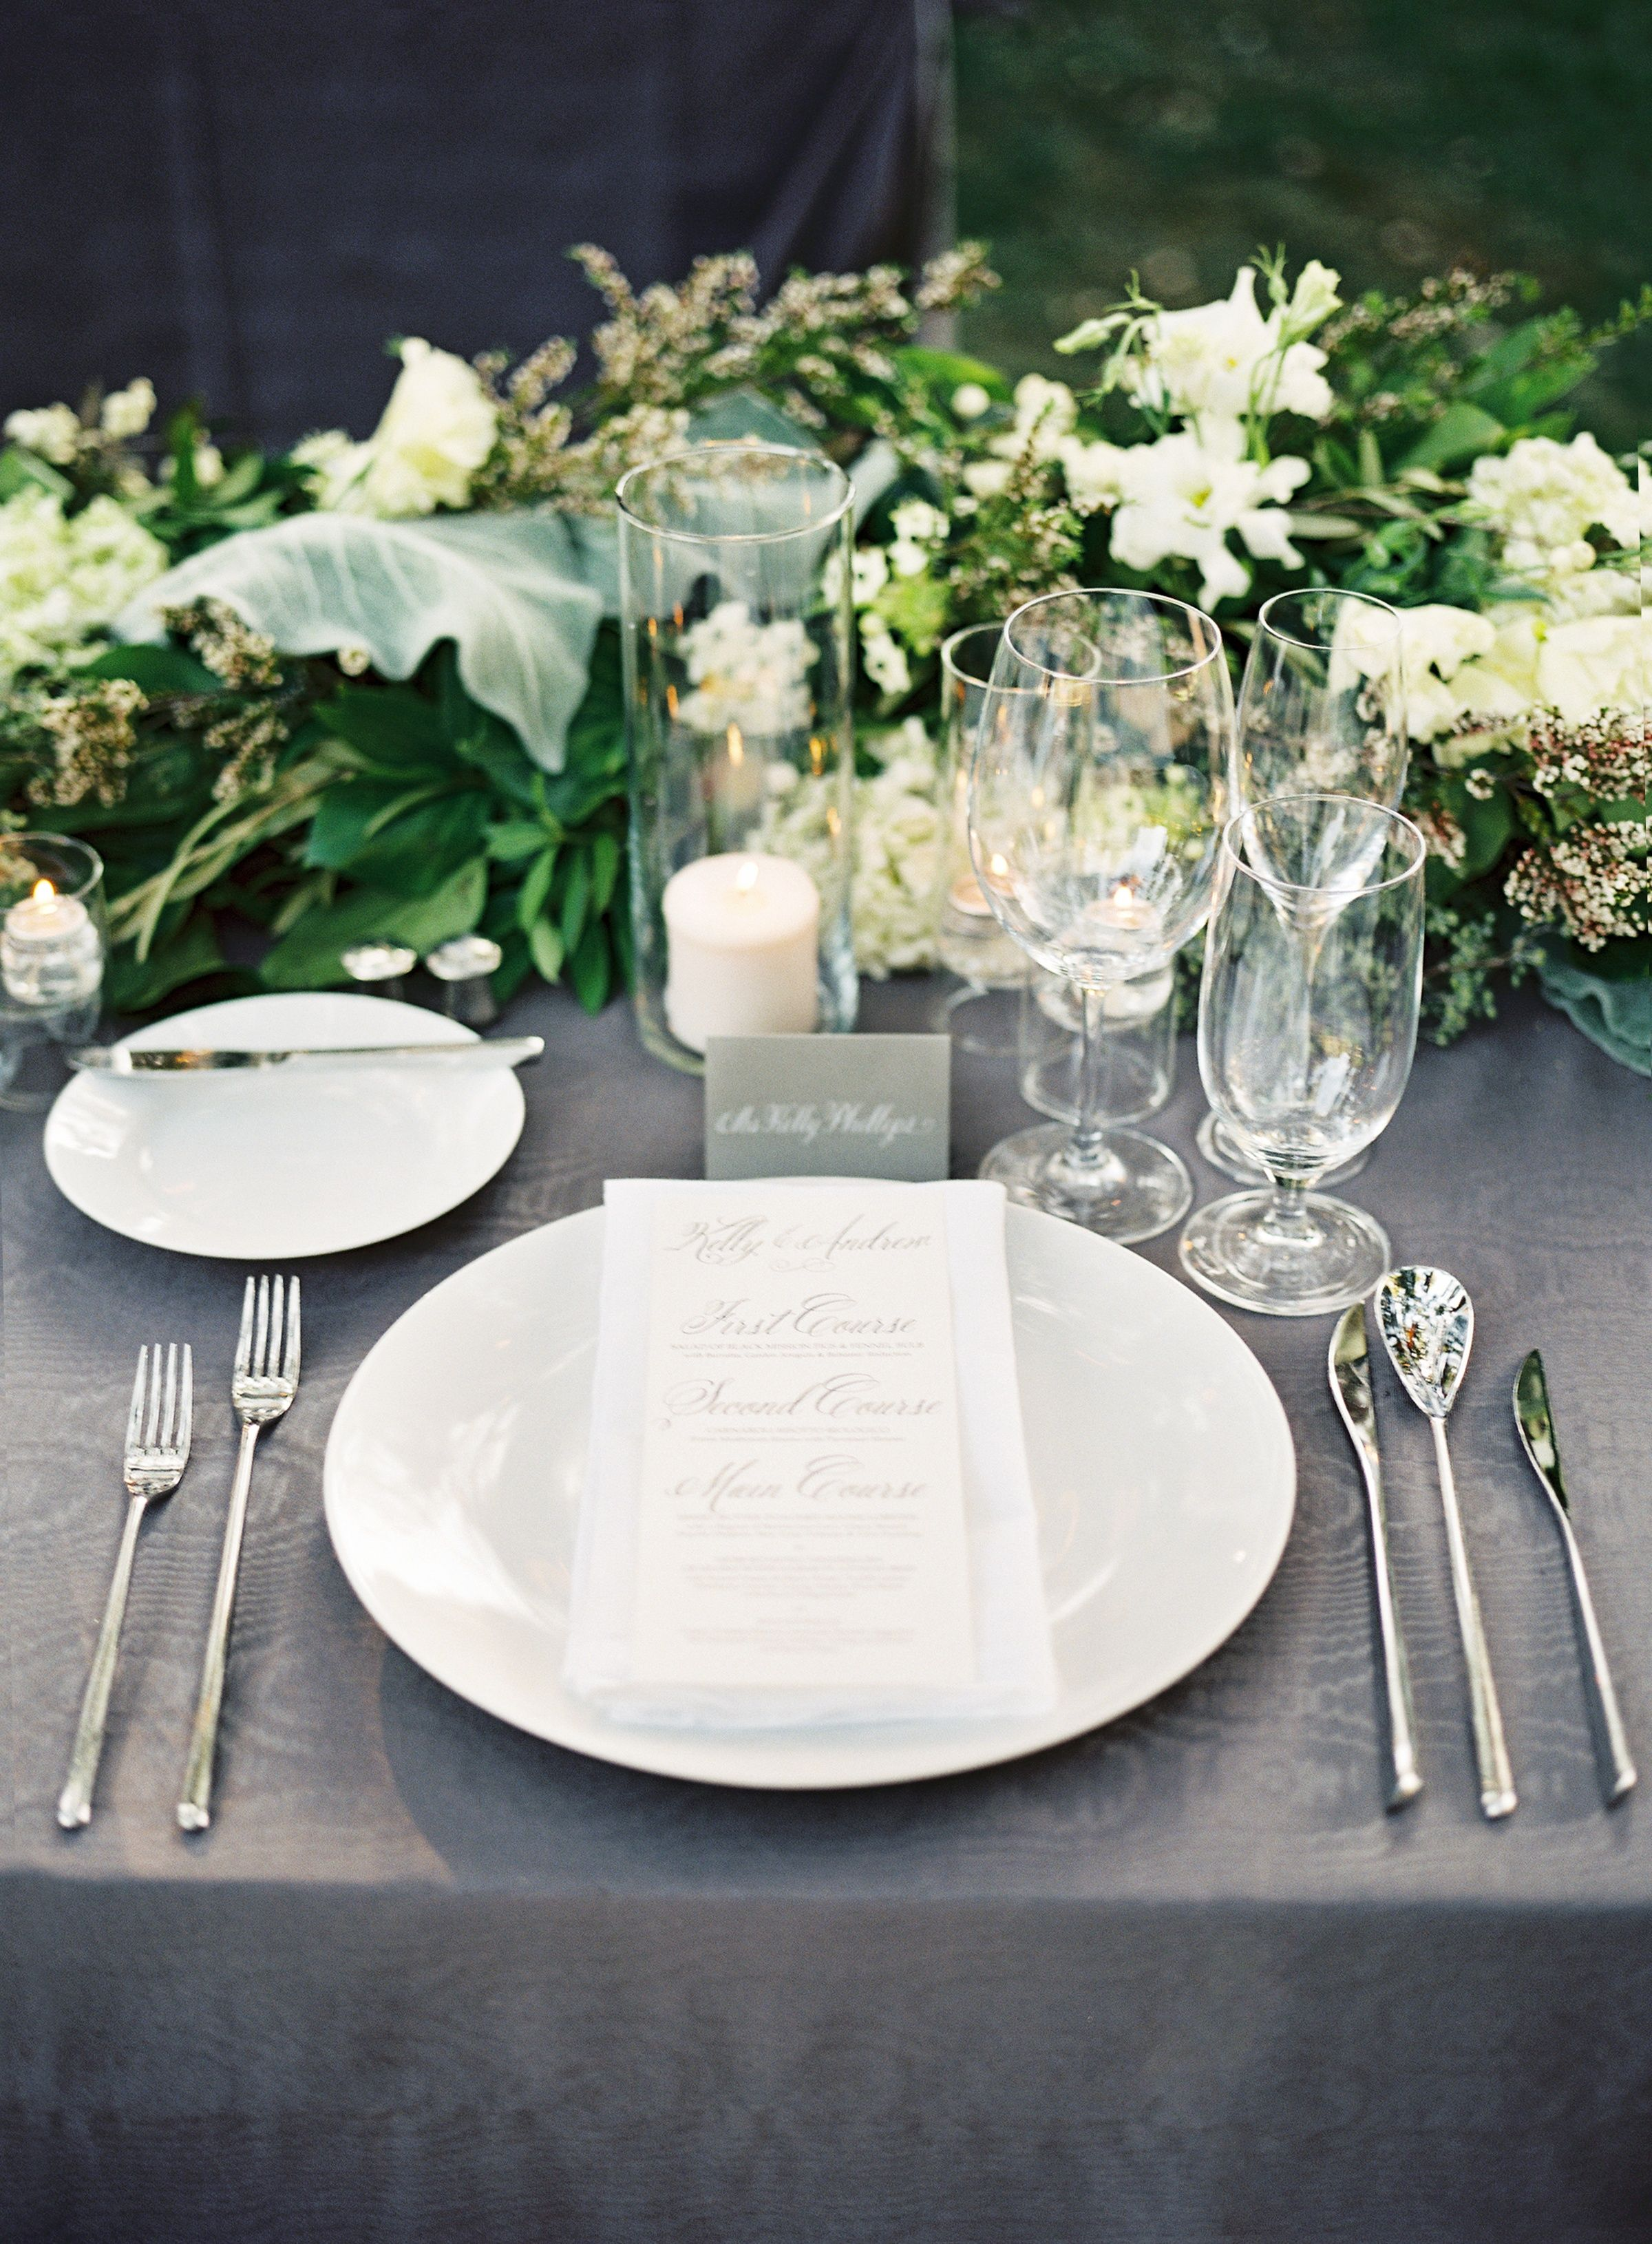 Elegant gray and white place settings steve steinhardt for Table place setting